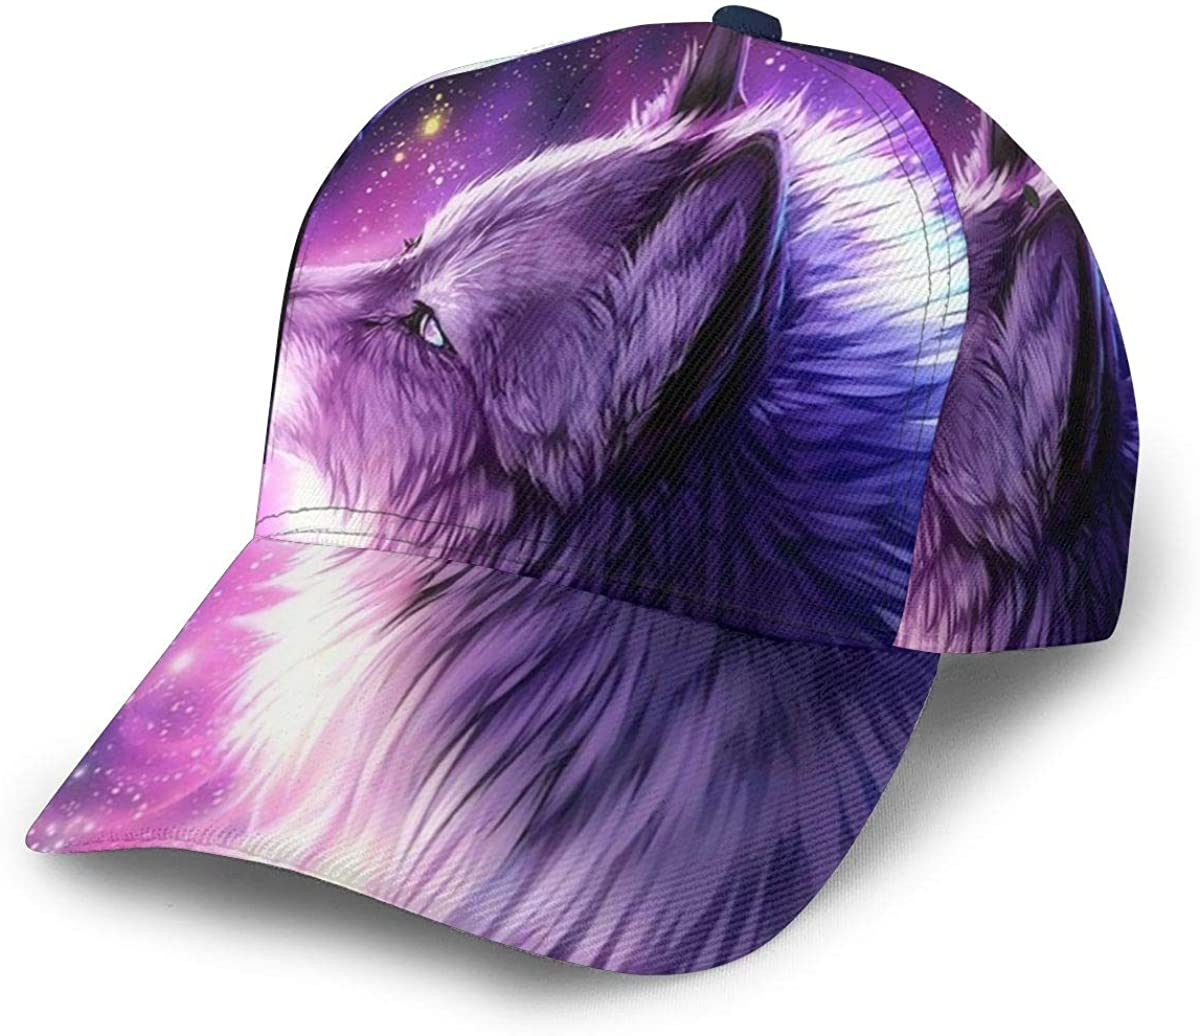 Men's Baseball Caps Adjustable Size Hip-Pop Complete free shipping Free Shipping Dad Snapback-Cap Cap